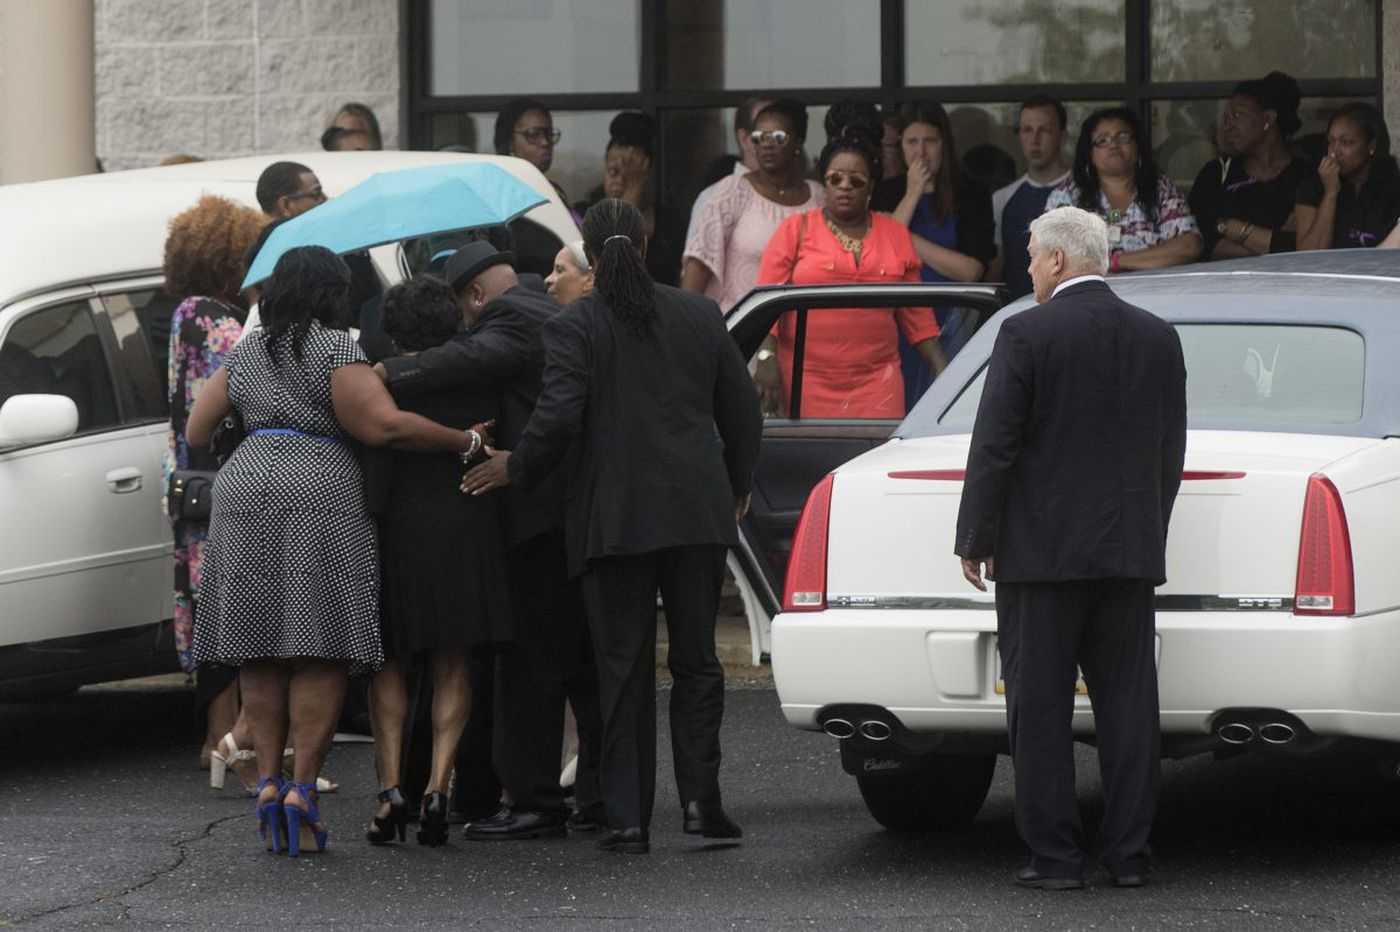 At funeral services for apparent road-rage victim, 'tears of joy and pain'